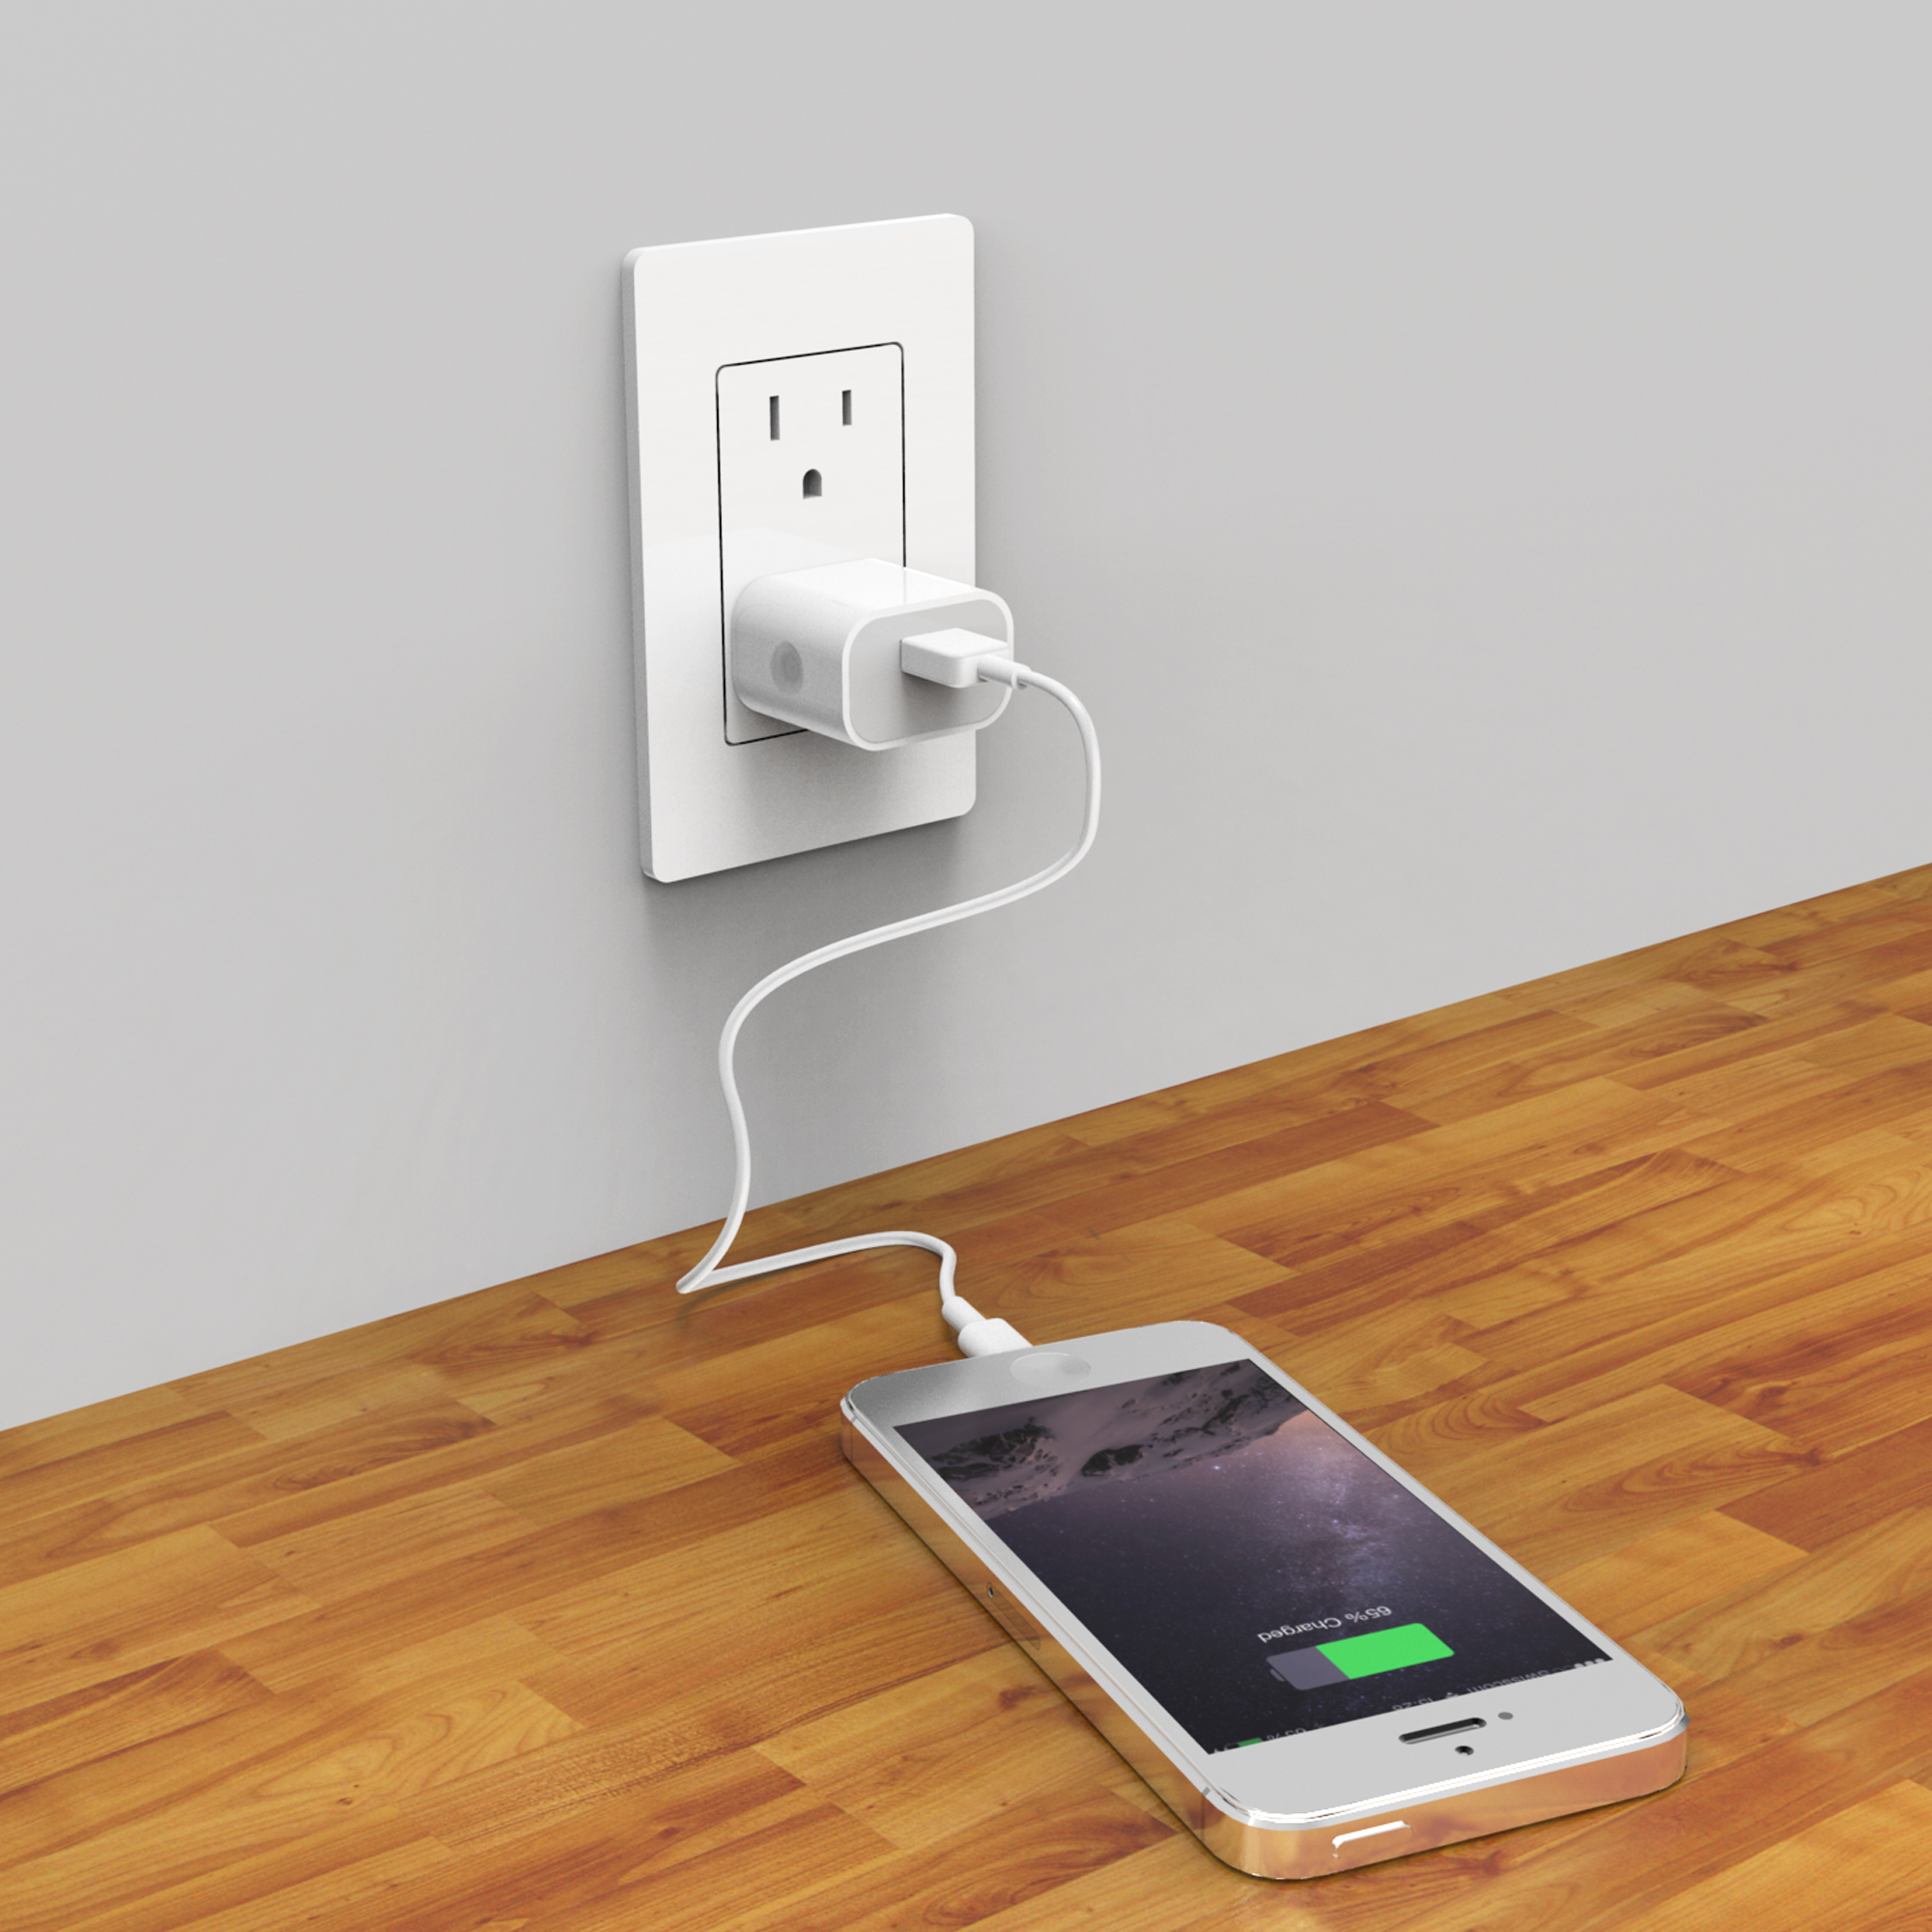 Iphone Wall Charger: Why Does My Cell Phone Charger Get So Hot?